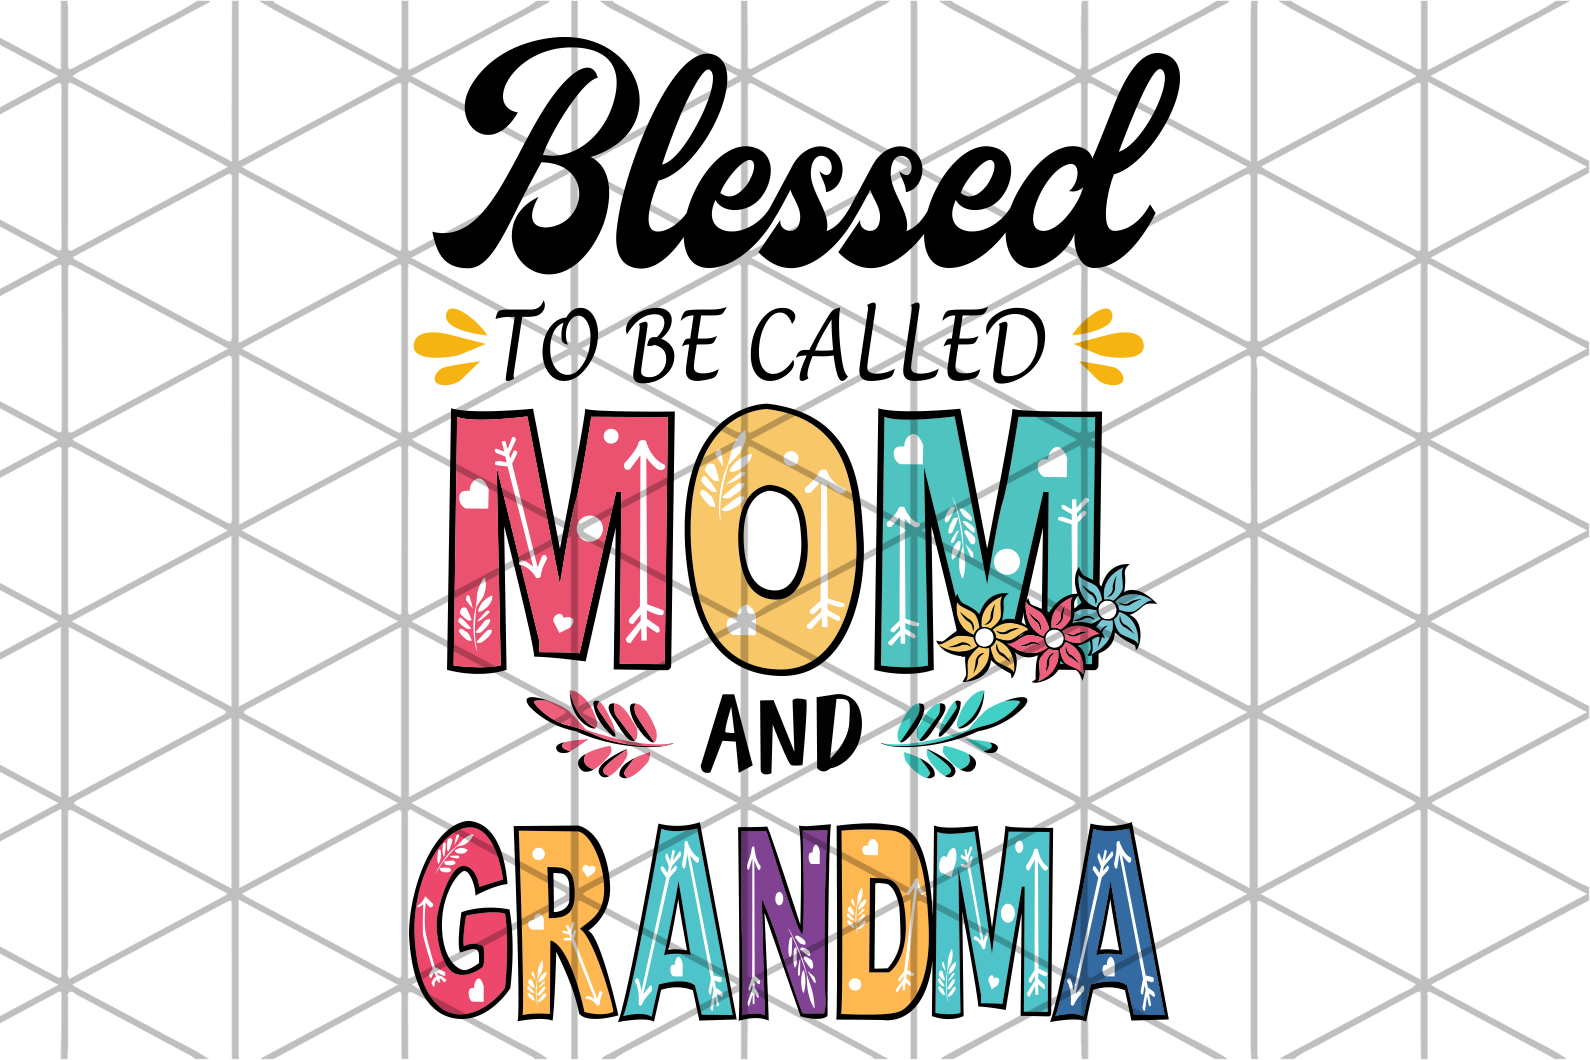 Blessed to be called mom and grandma, grandma gift, grandma birthday, grandma life, best grandma ever,family svg , family shirt,family gift,trending svg, Files For Silhouette, Files For Cricut, SVG, DXF, EPS, PNG, Instant Download